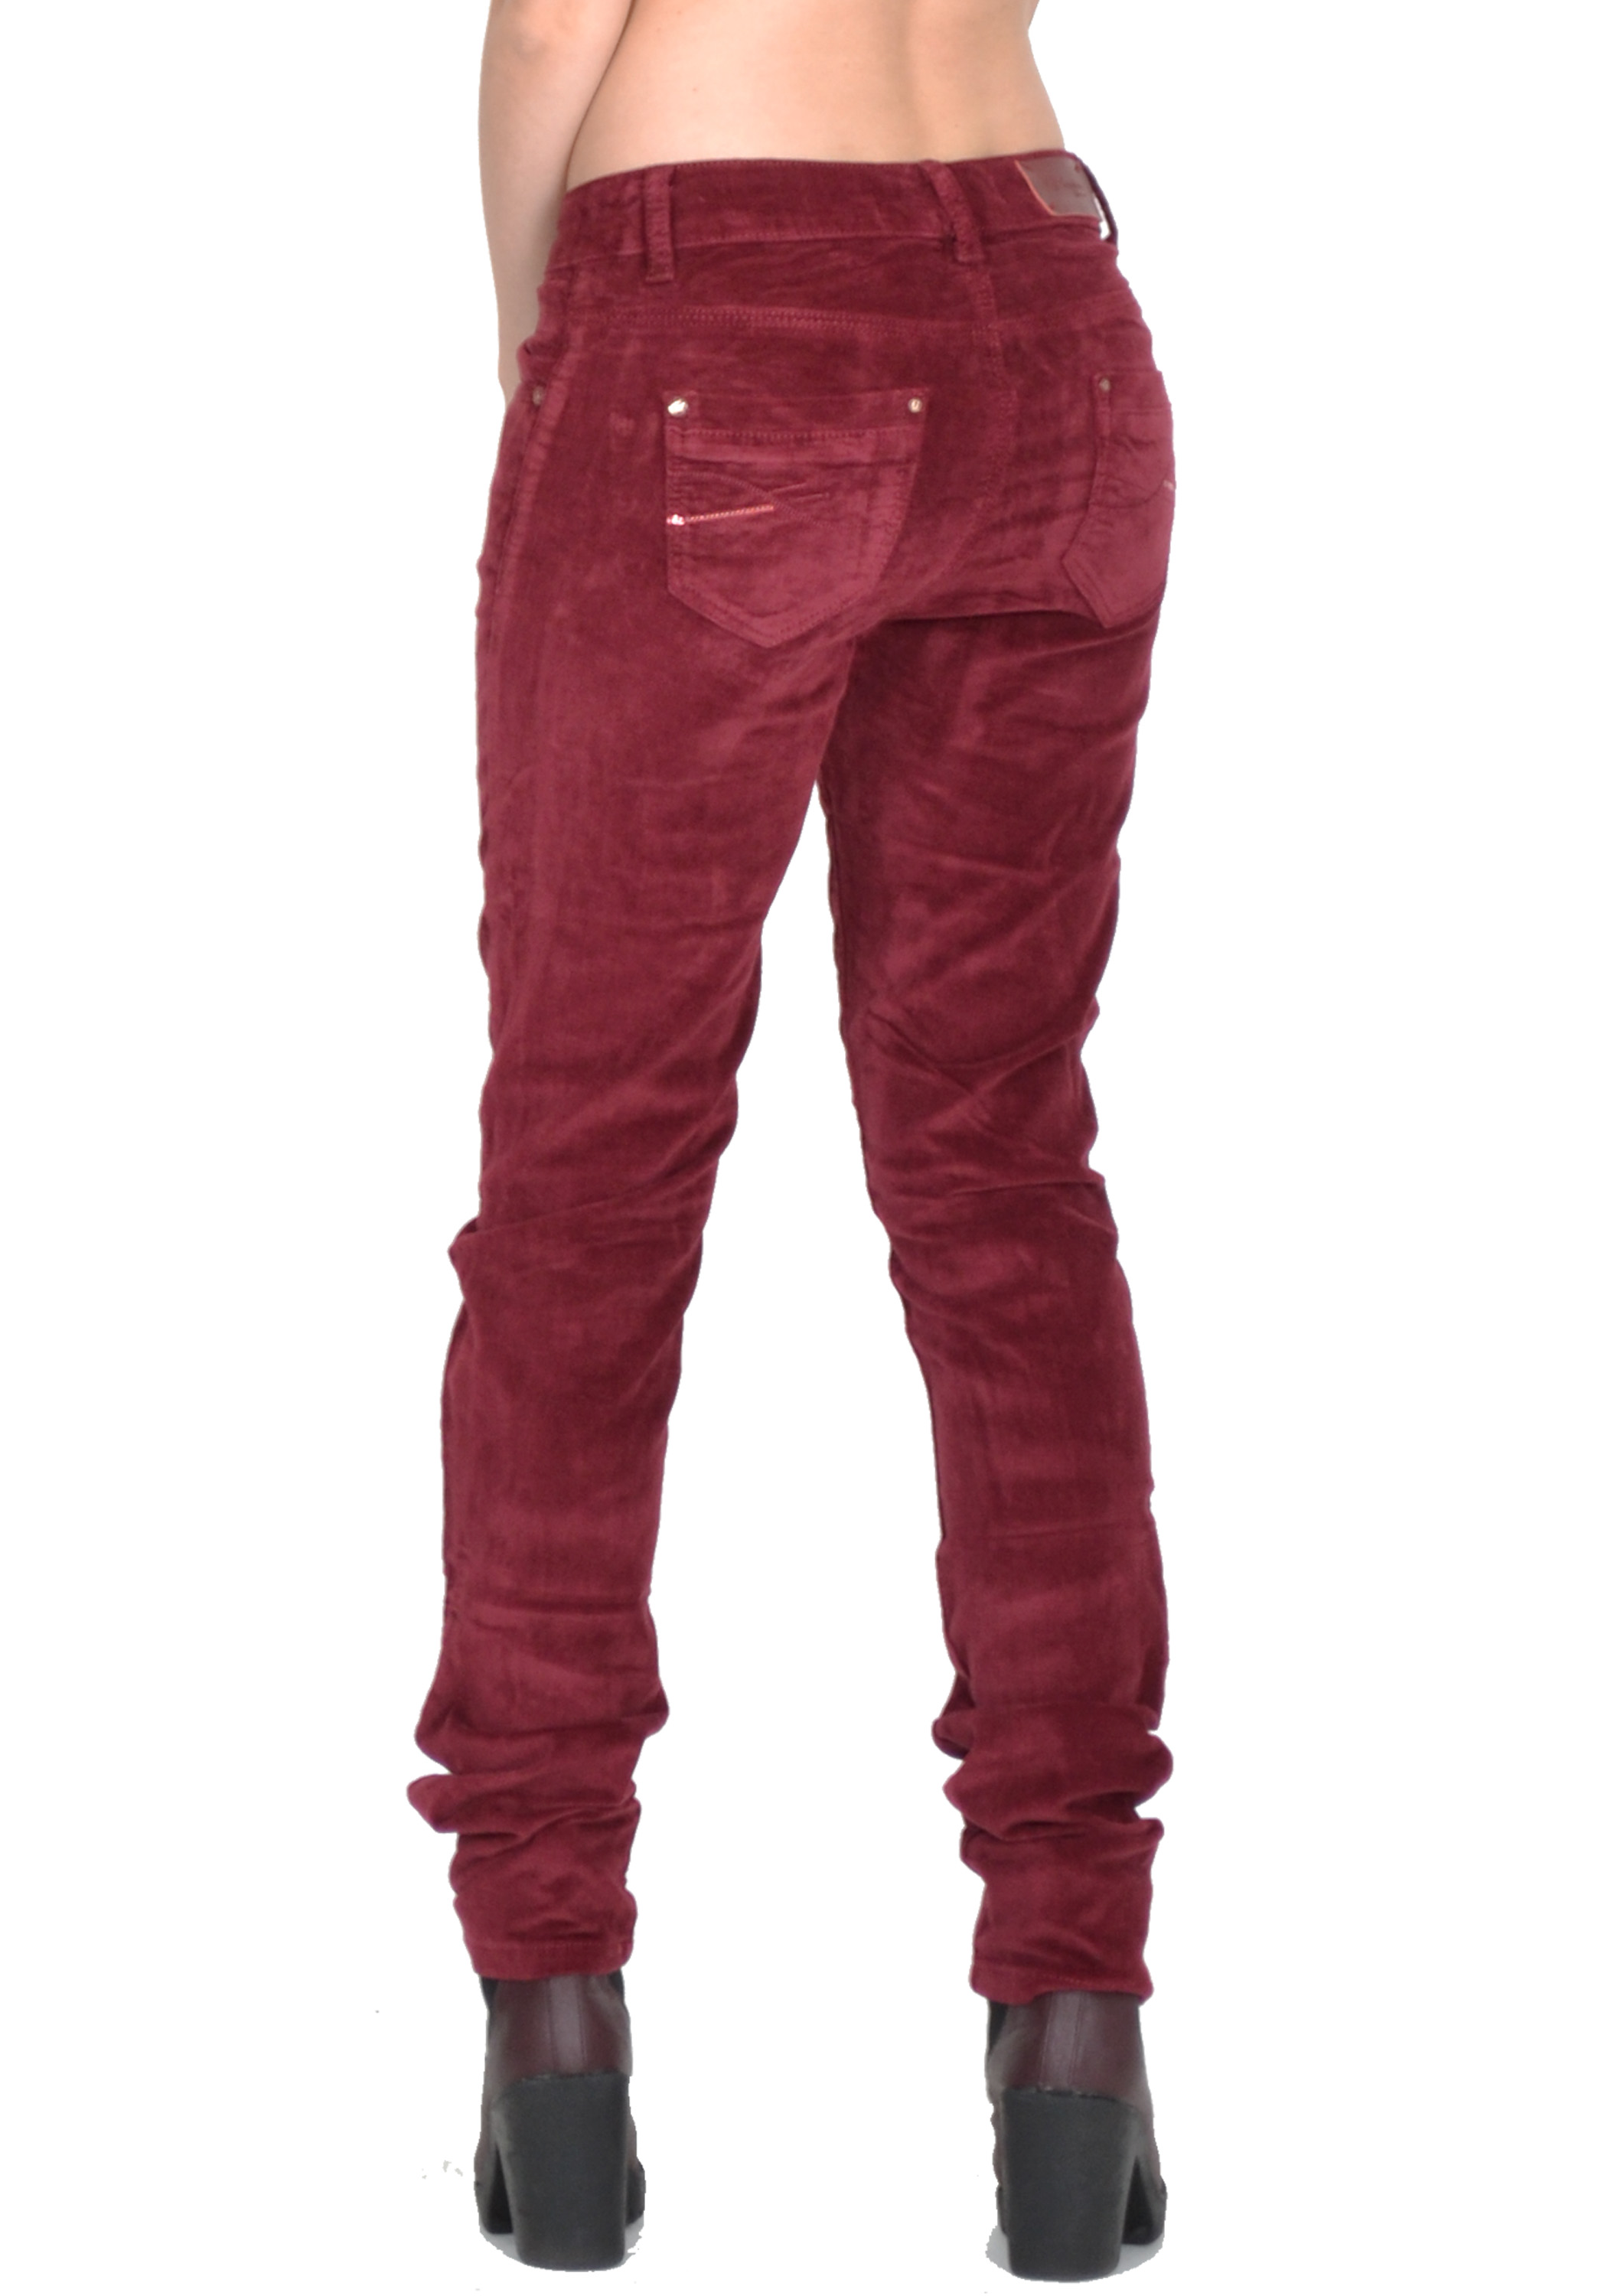 New Ladies Womens Slim Skinny Fitted Stretchy Red Cords ...